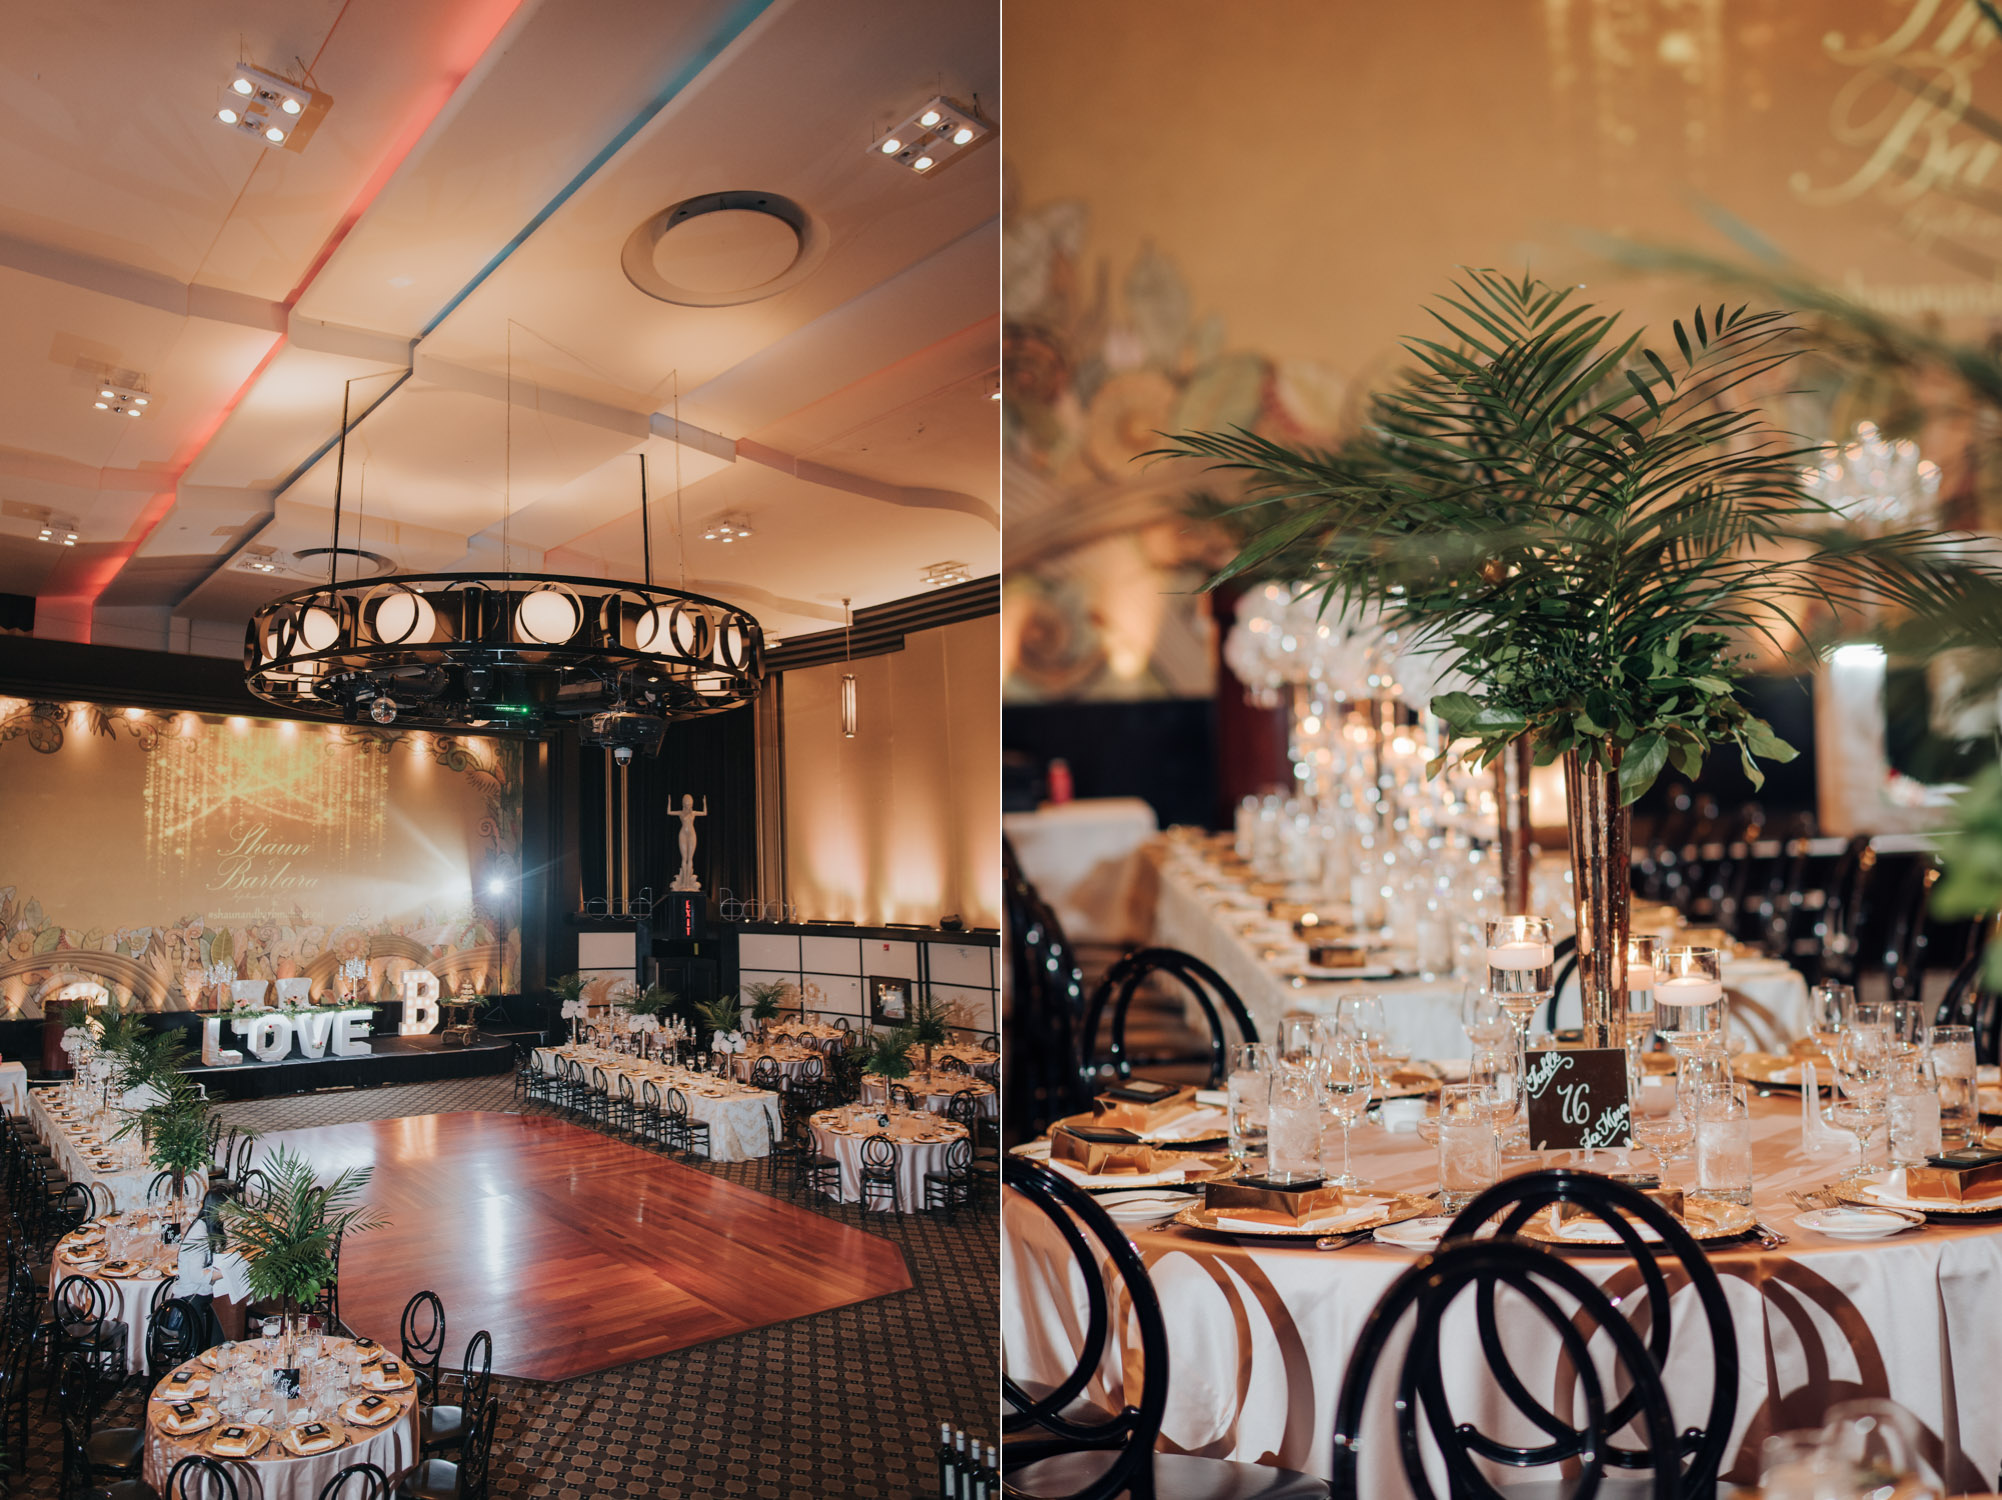 Eglinton Grand Wedding decor